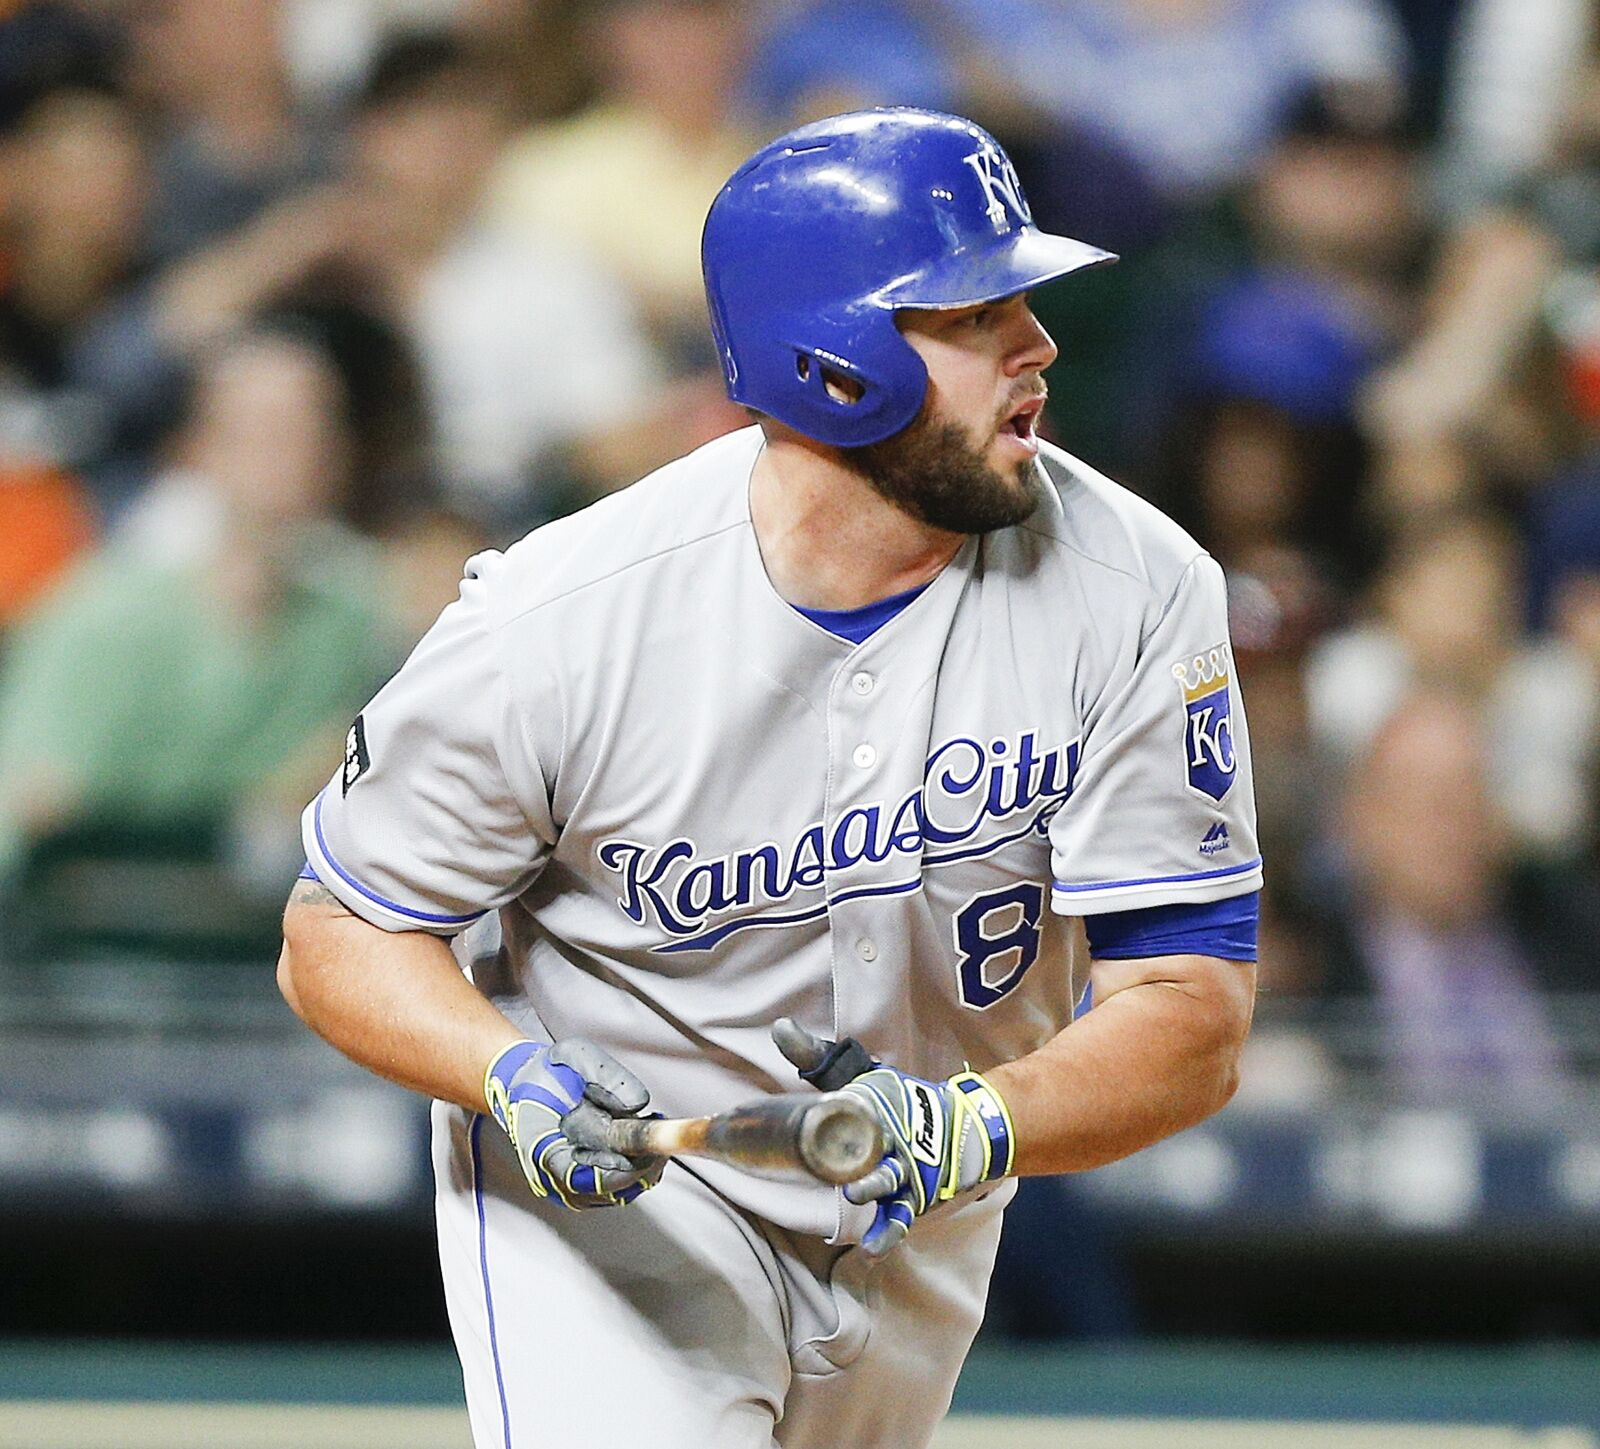 Royals: Farewell to you, Mike Moustakas